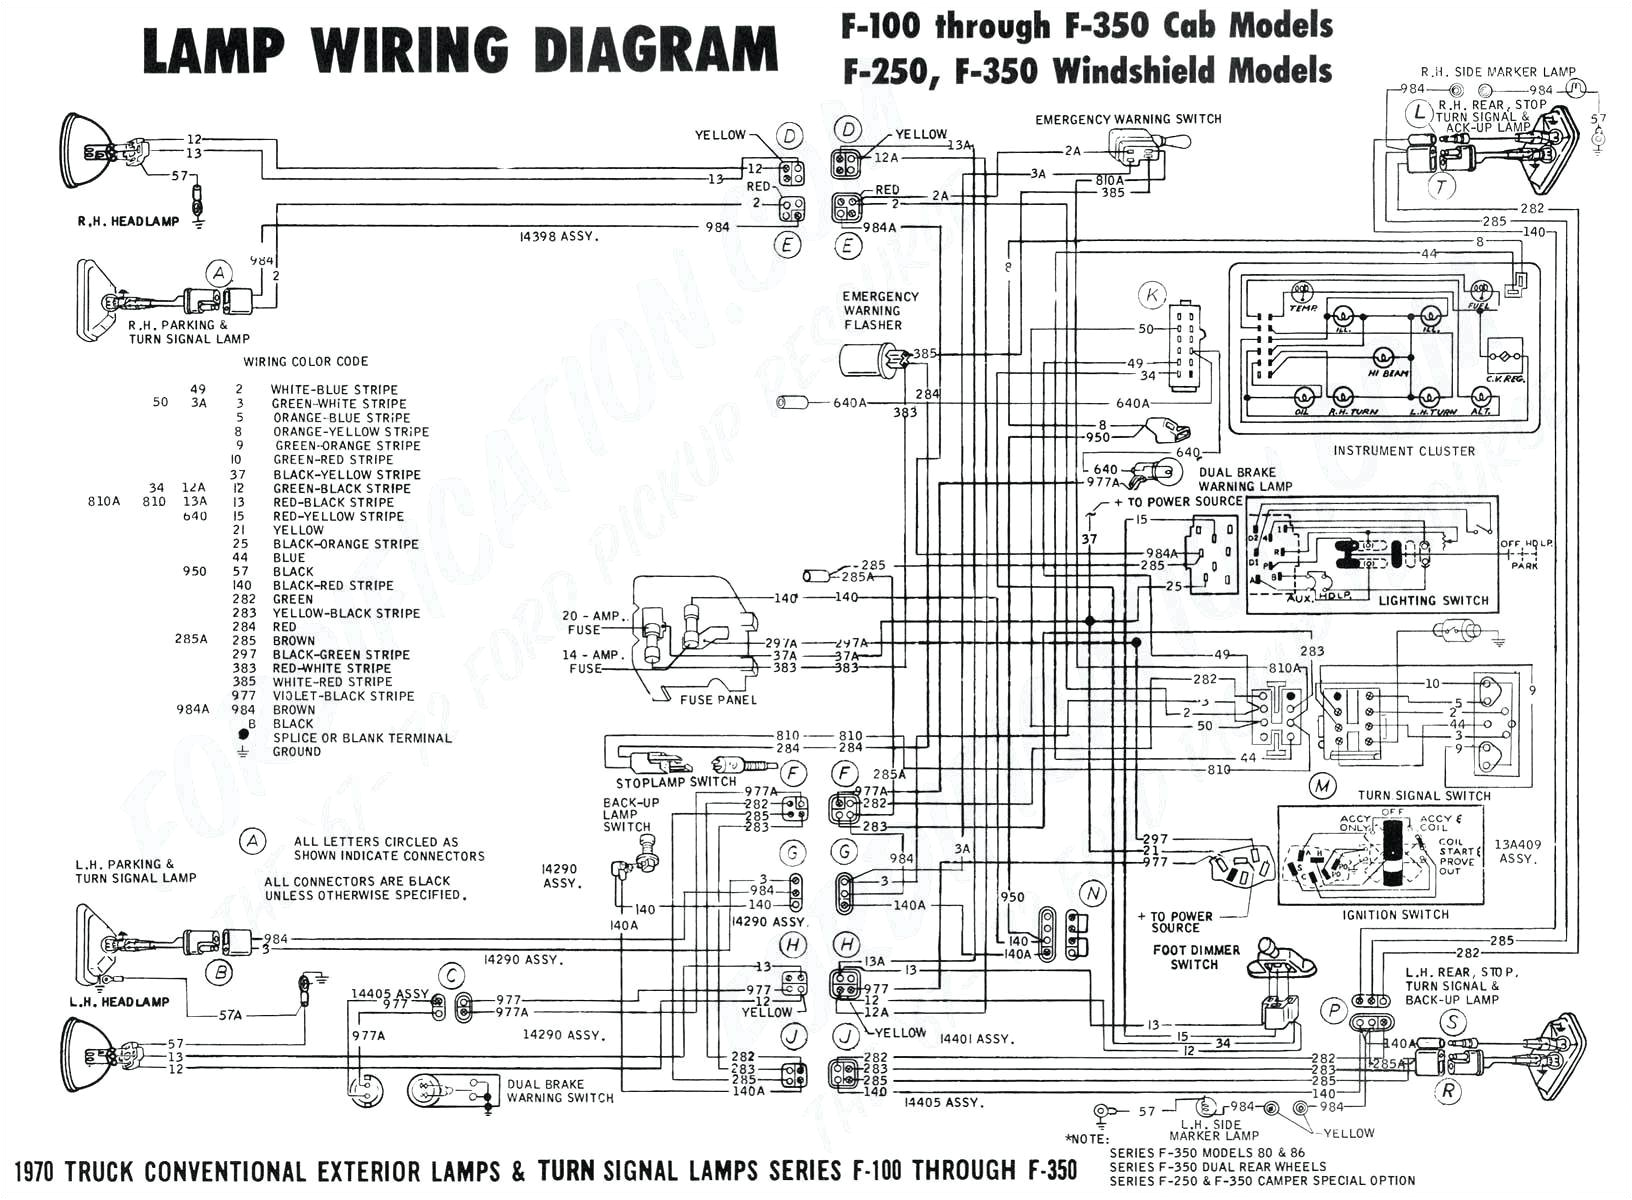 electric space heater wiring diagram awesome 3 phase schematics diagrams e280a2 like 2003 vw passat